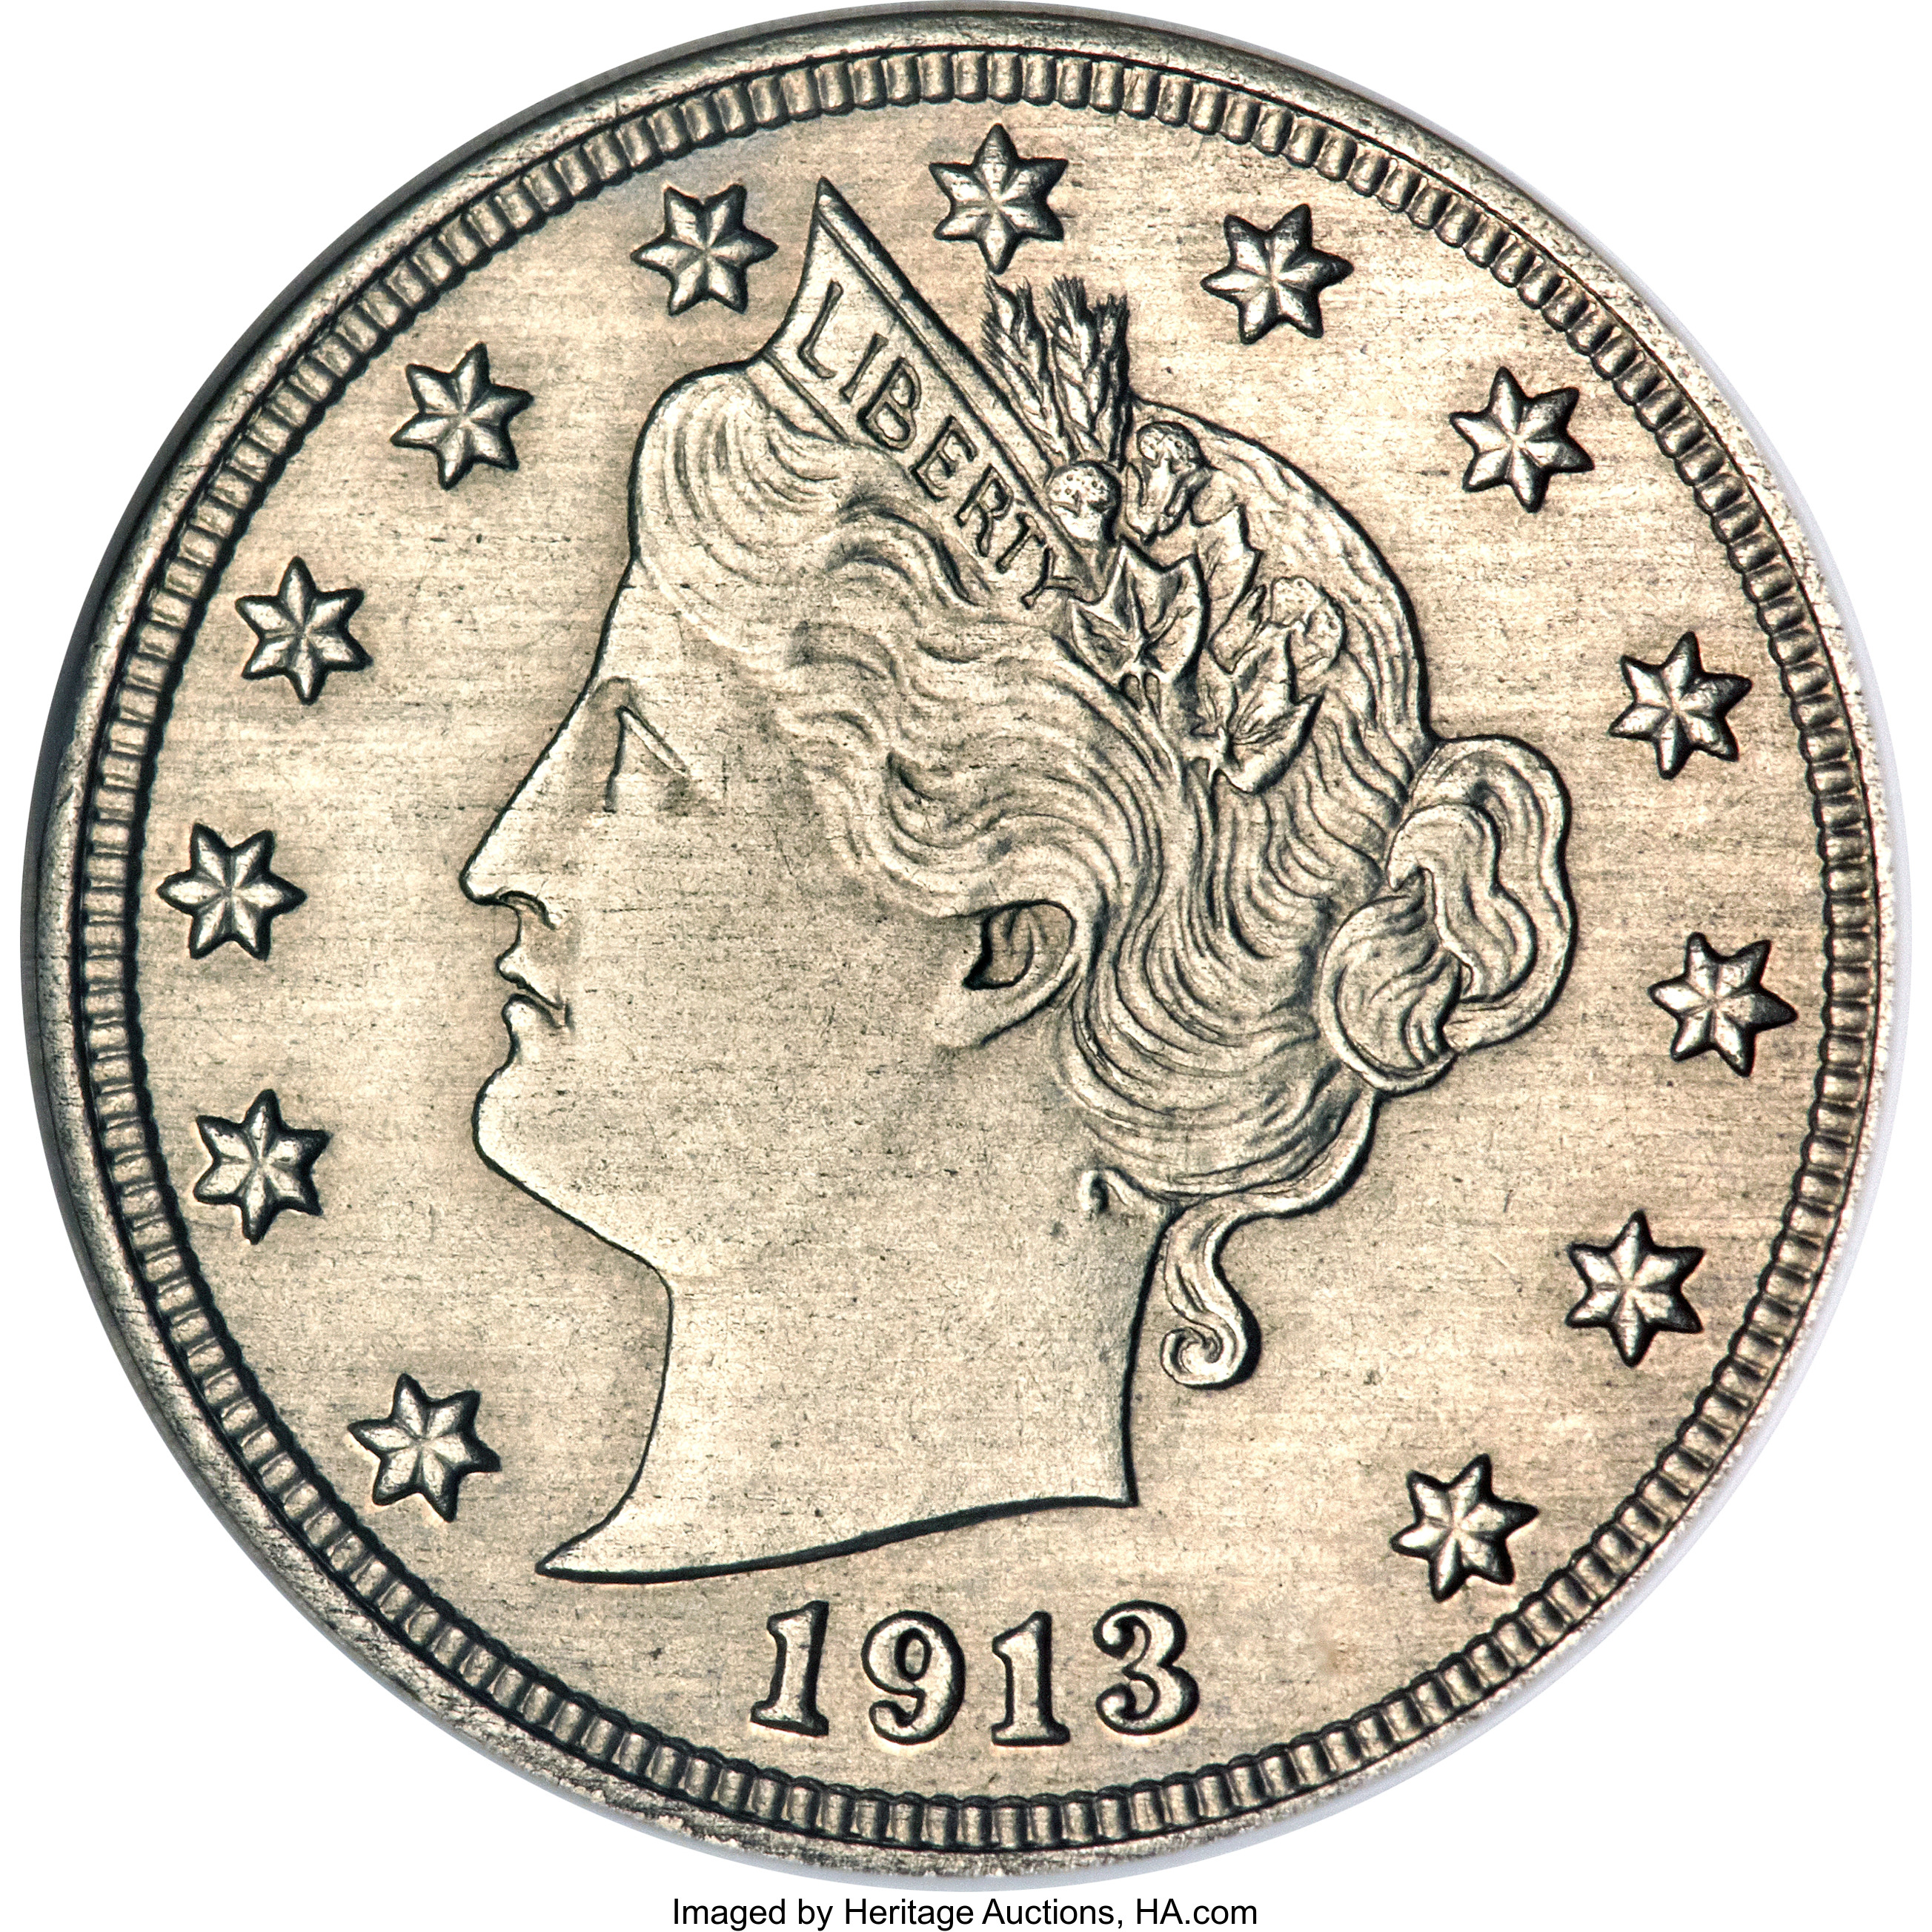 The Famous 1913 Liberty (V) Nickel